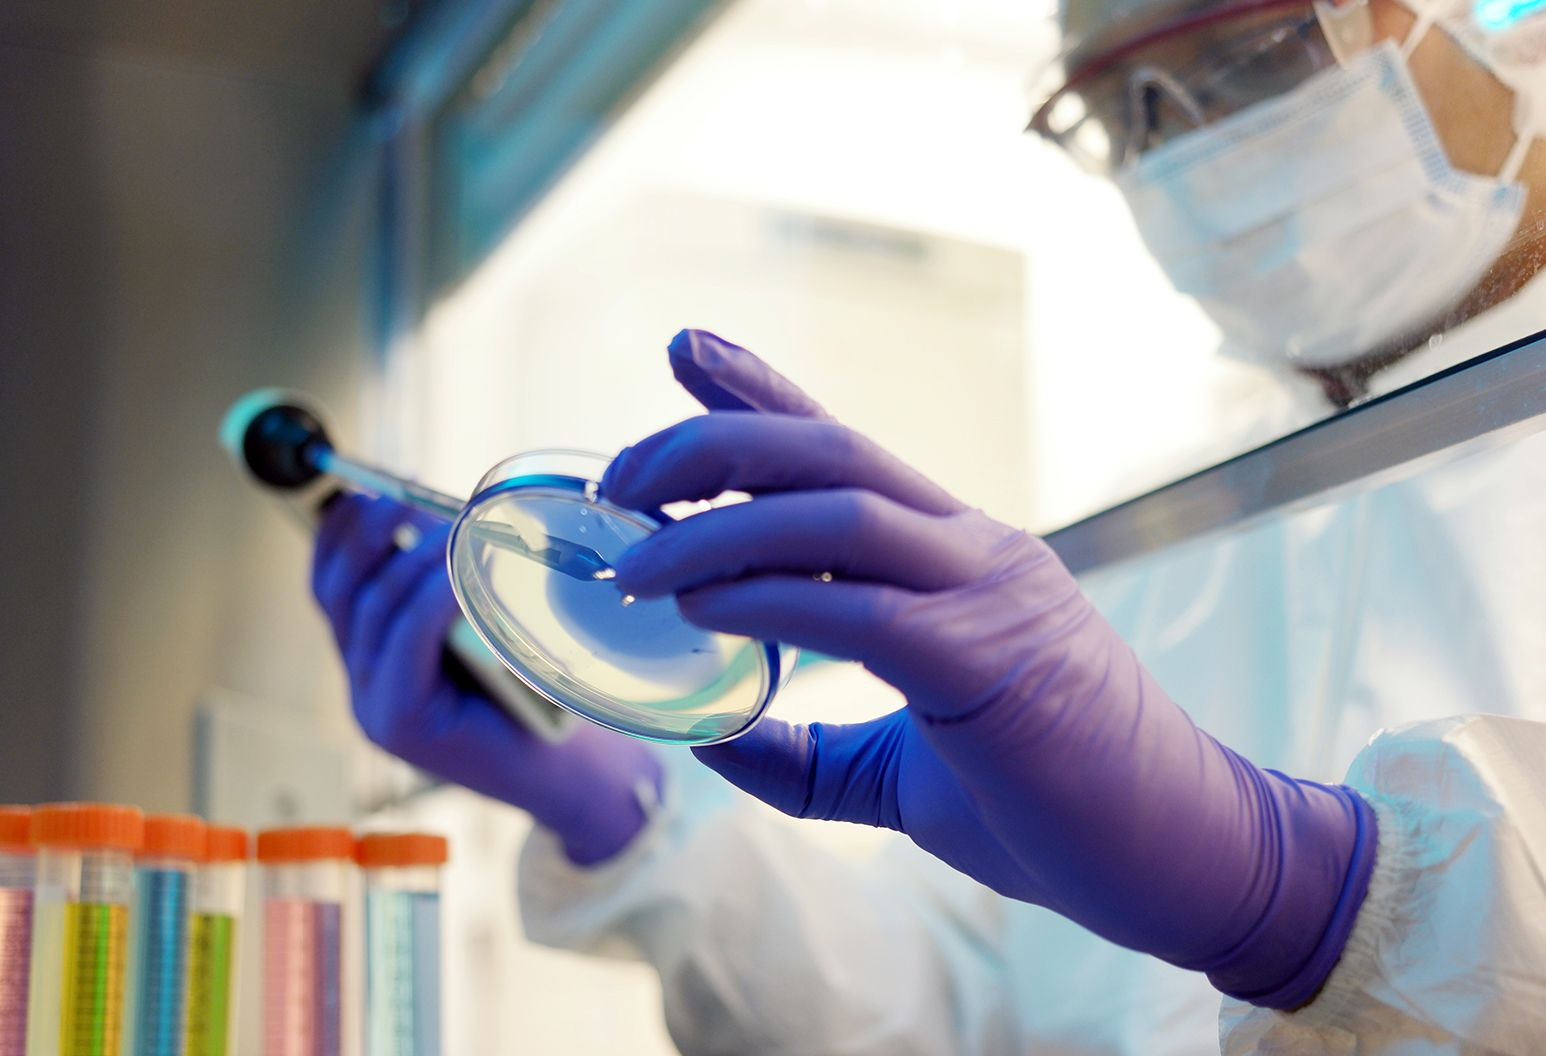 Scientist wearing purple gloves, goggles, and a surgical mask is holding a test tube over a petri dish